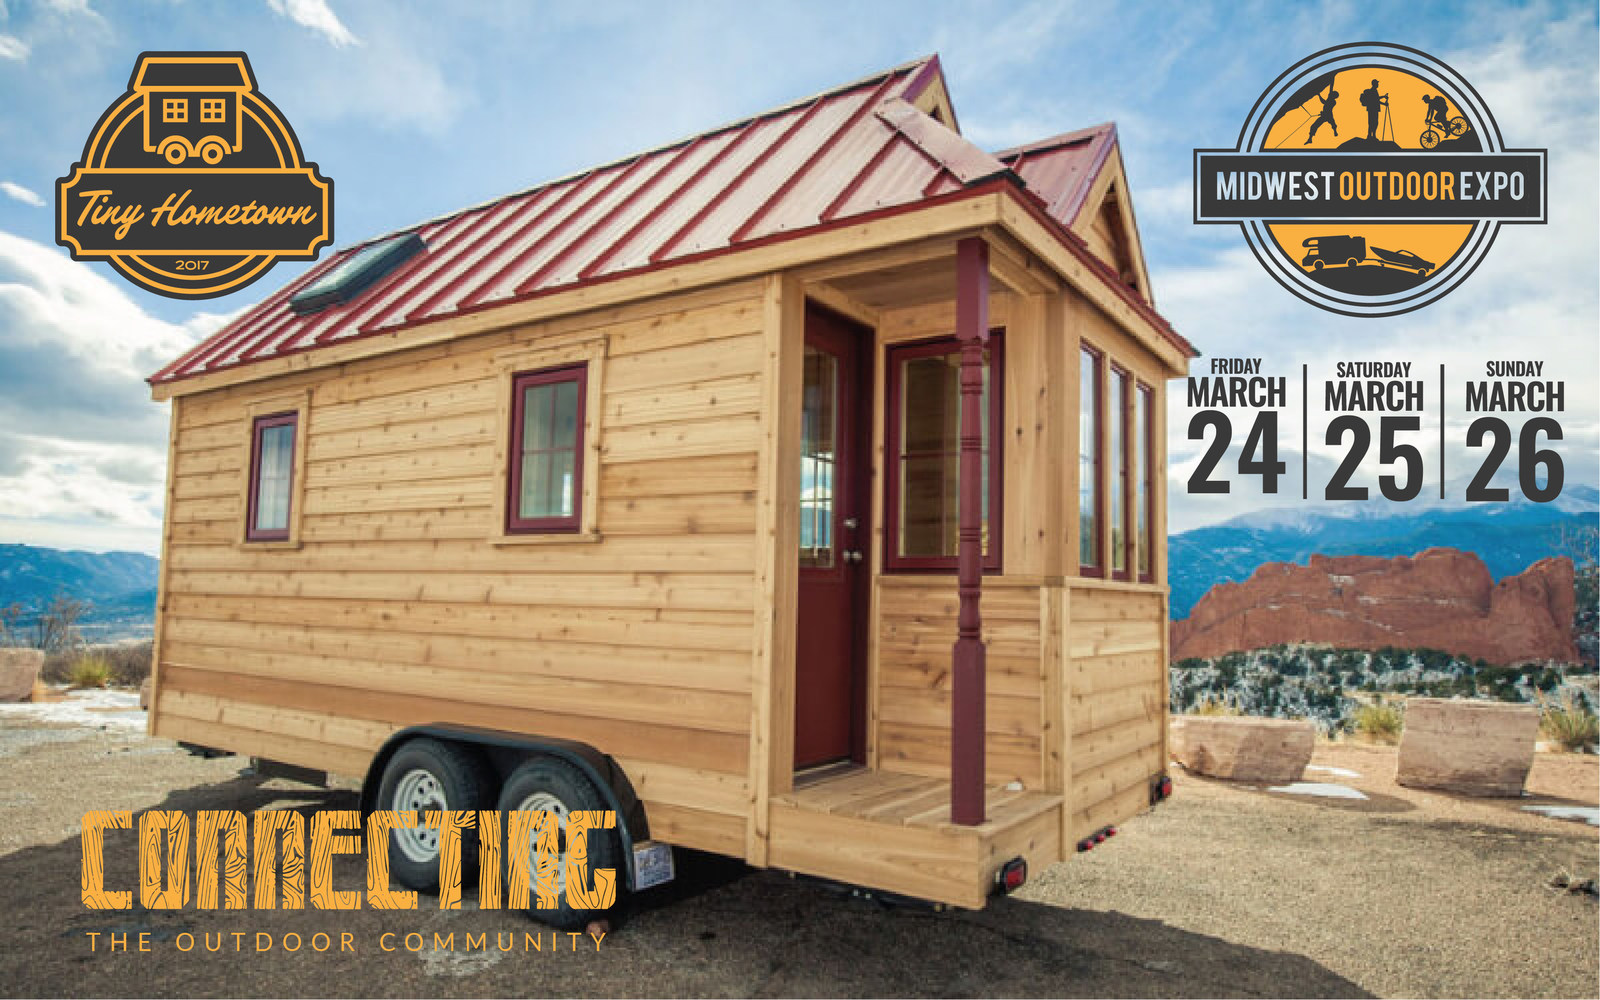 Largest Tiny House high five jenna and guillaume and view its road worthy design and details reserve your spot today for the largest tiny house conference yet Largest Tiny Home Exhibit In The Midwest Coming To Indianapolis